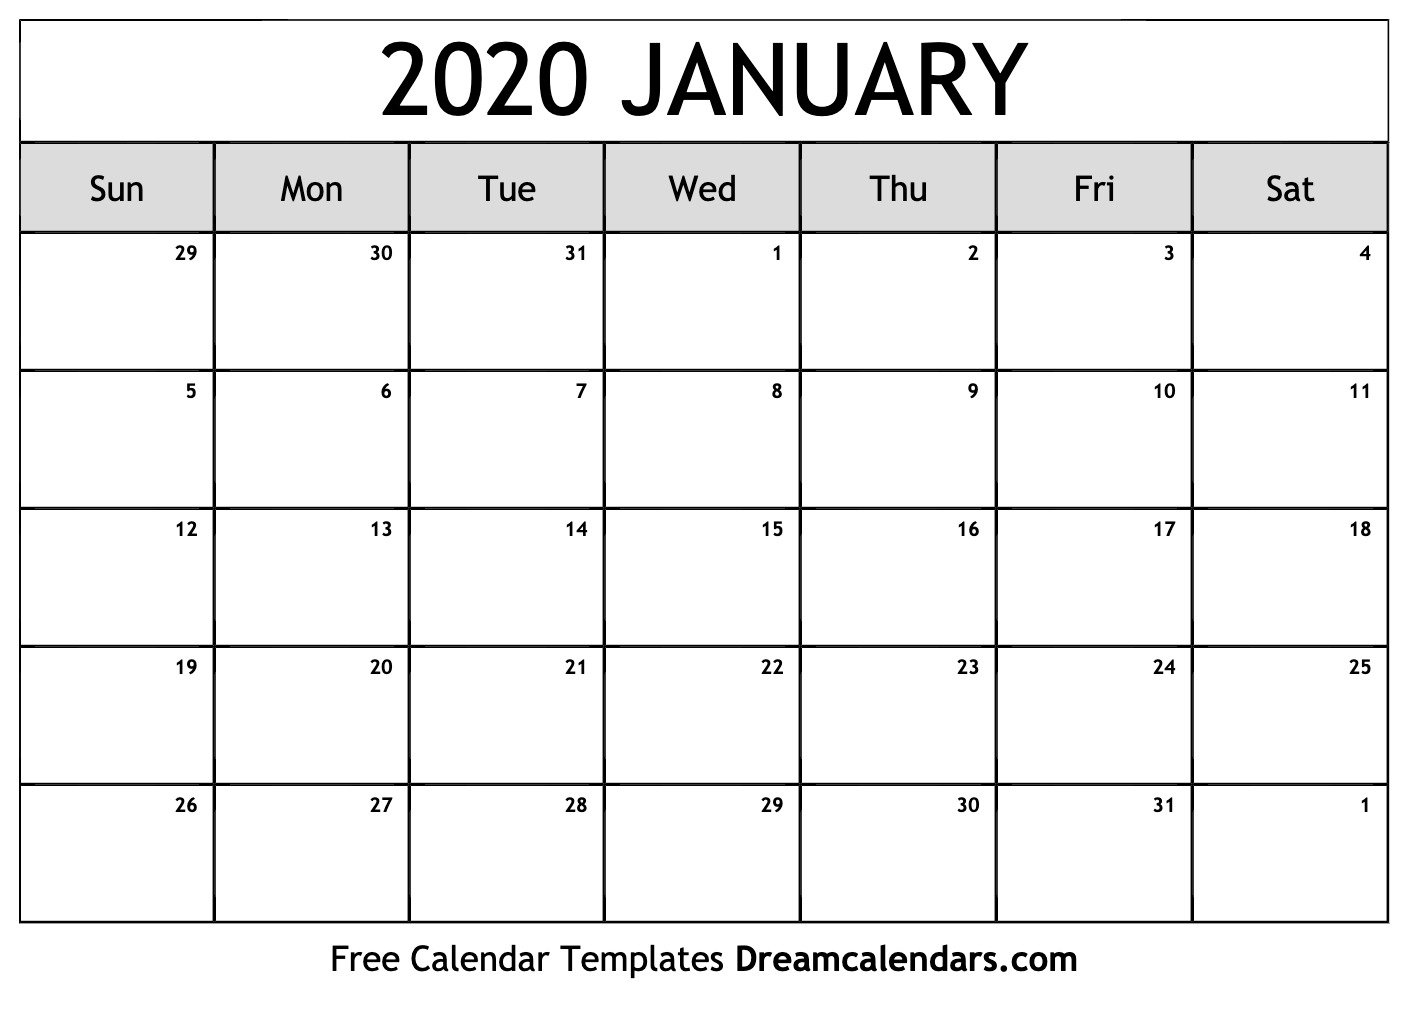 Jan 2020 Calendar Template  Yatay.horizonconsulting.co pertaining to November Calendar Excel 2020